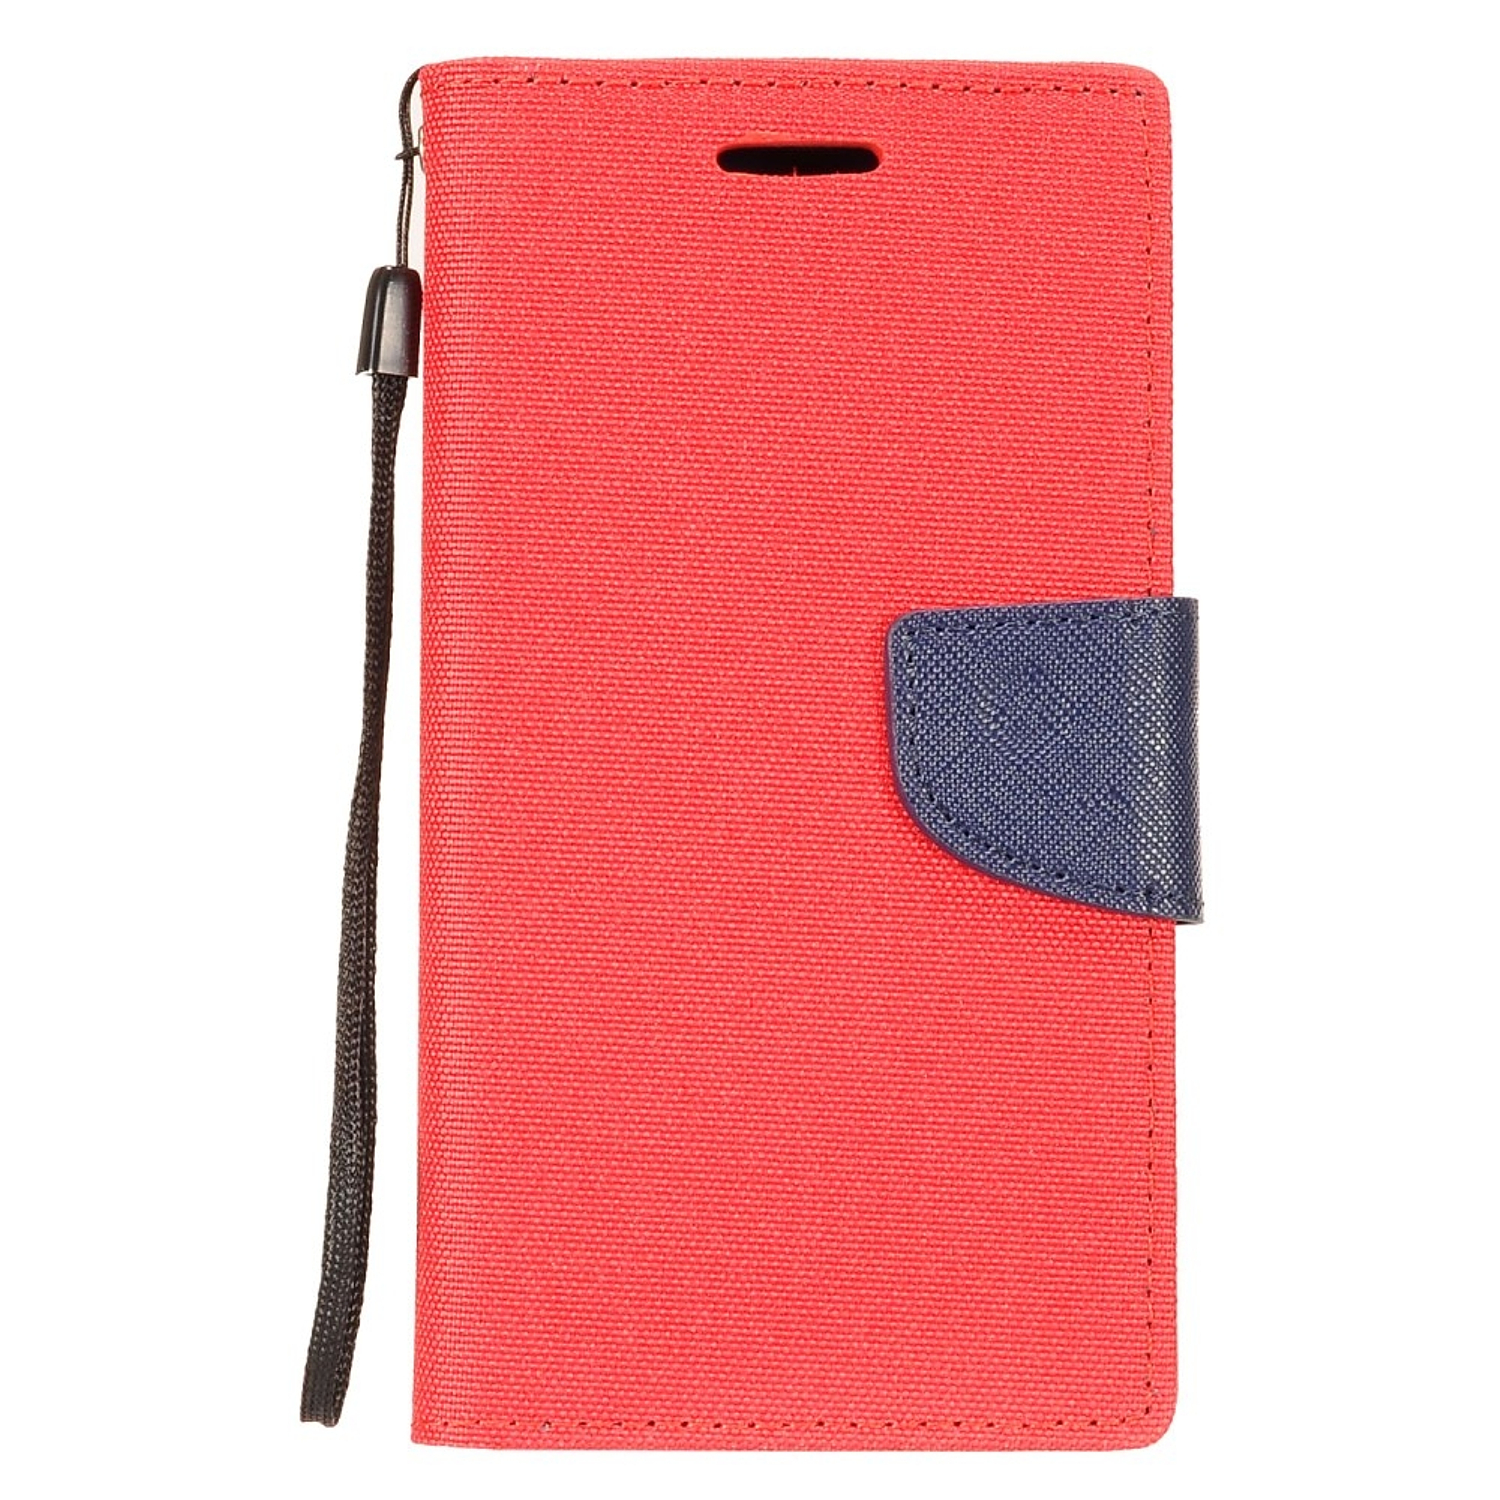 Alcatel Revvl Plus Phone Case by Insten Denim Fabric Folio Flip Leather Case Stand Cover [ID Credit Card Holder Slot] Wallet Pouch For Alcatel Revvl Plus